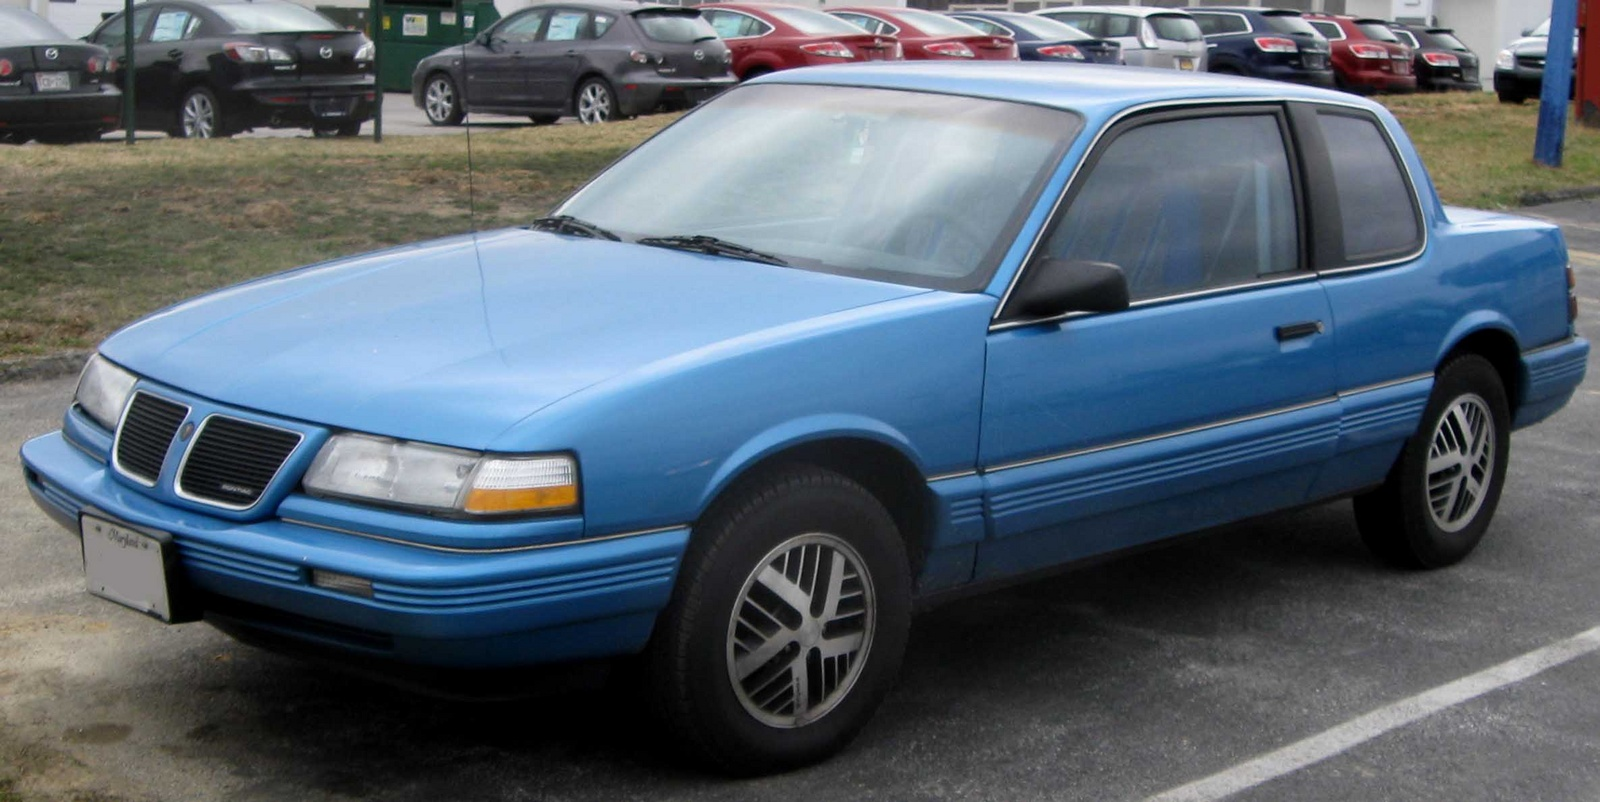 1991 Pontiac Grand Am Overview Cargurus